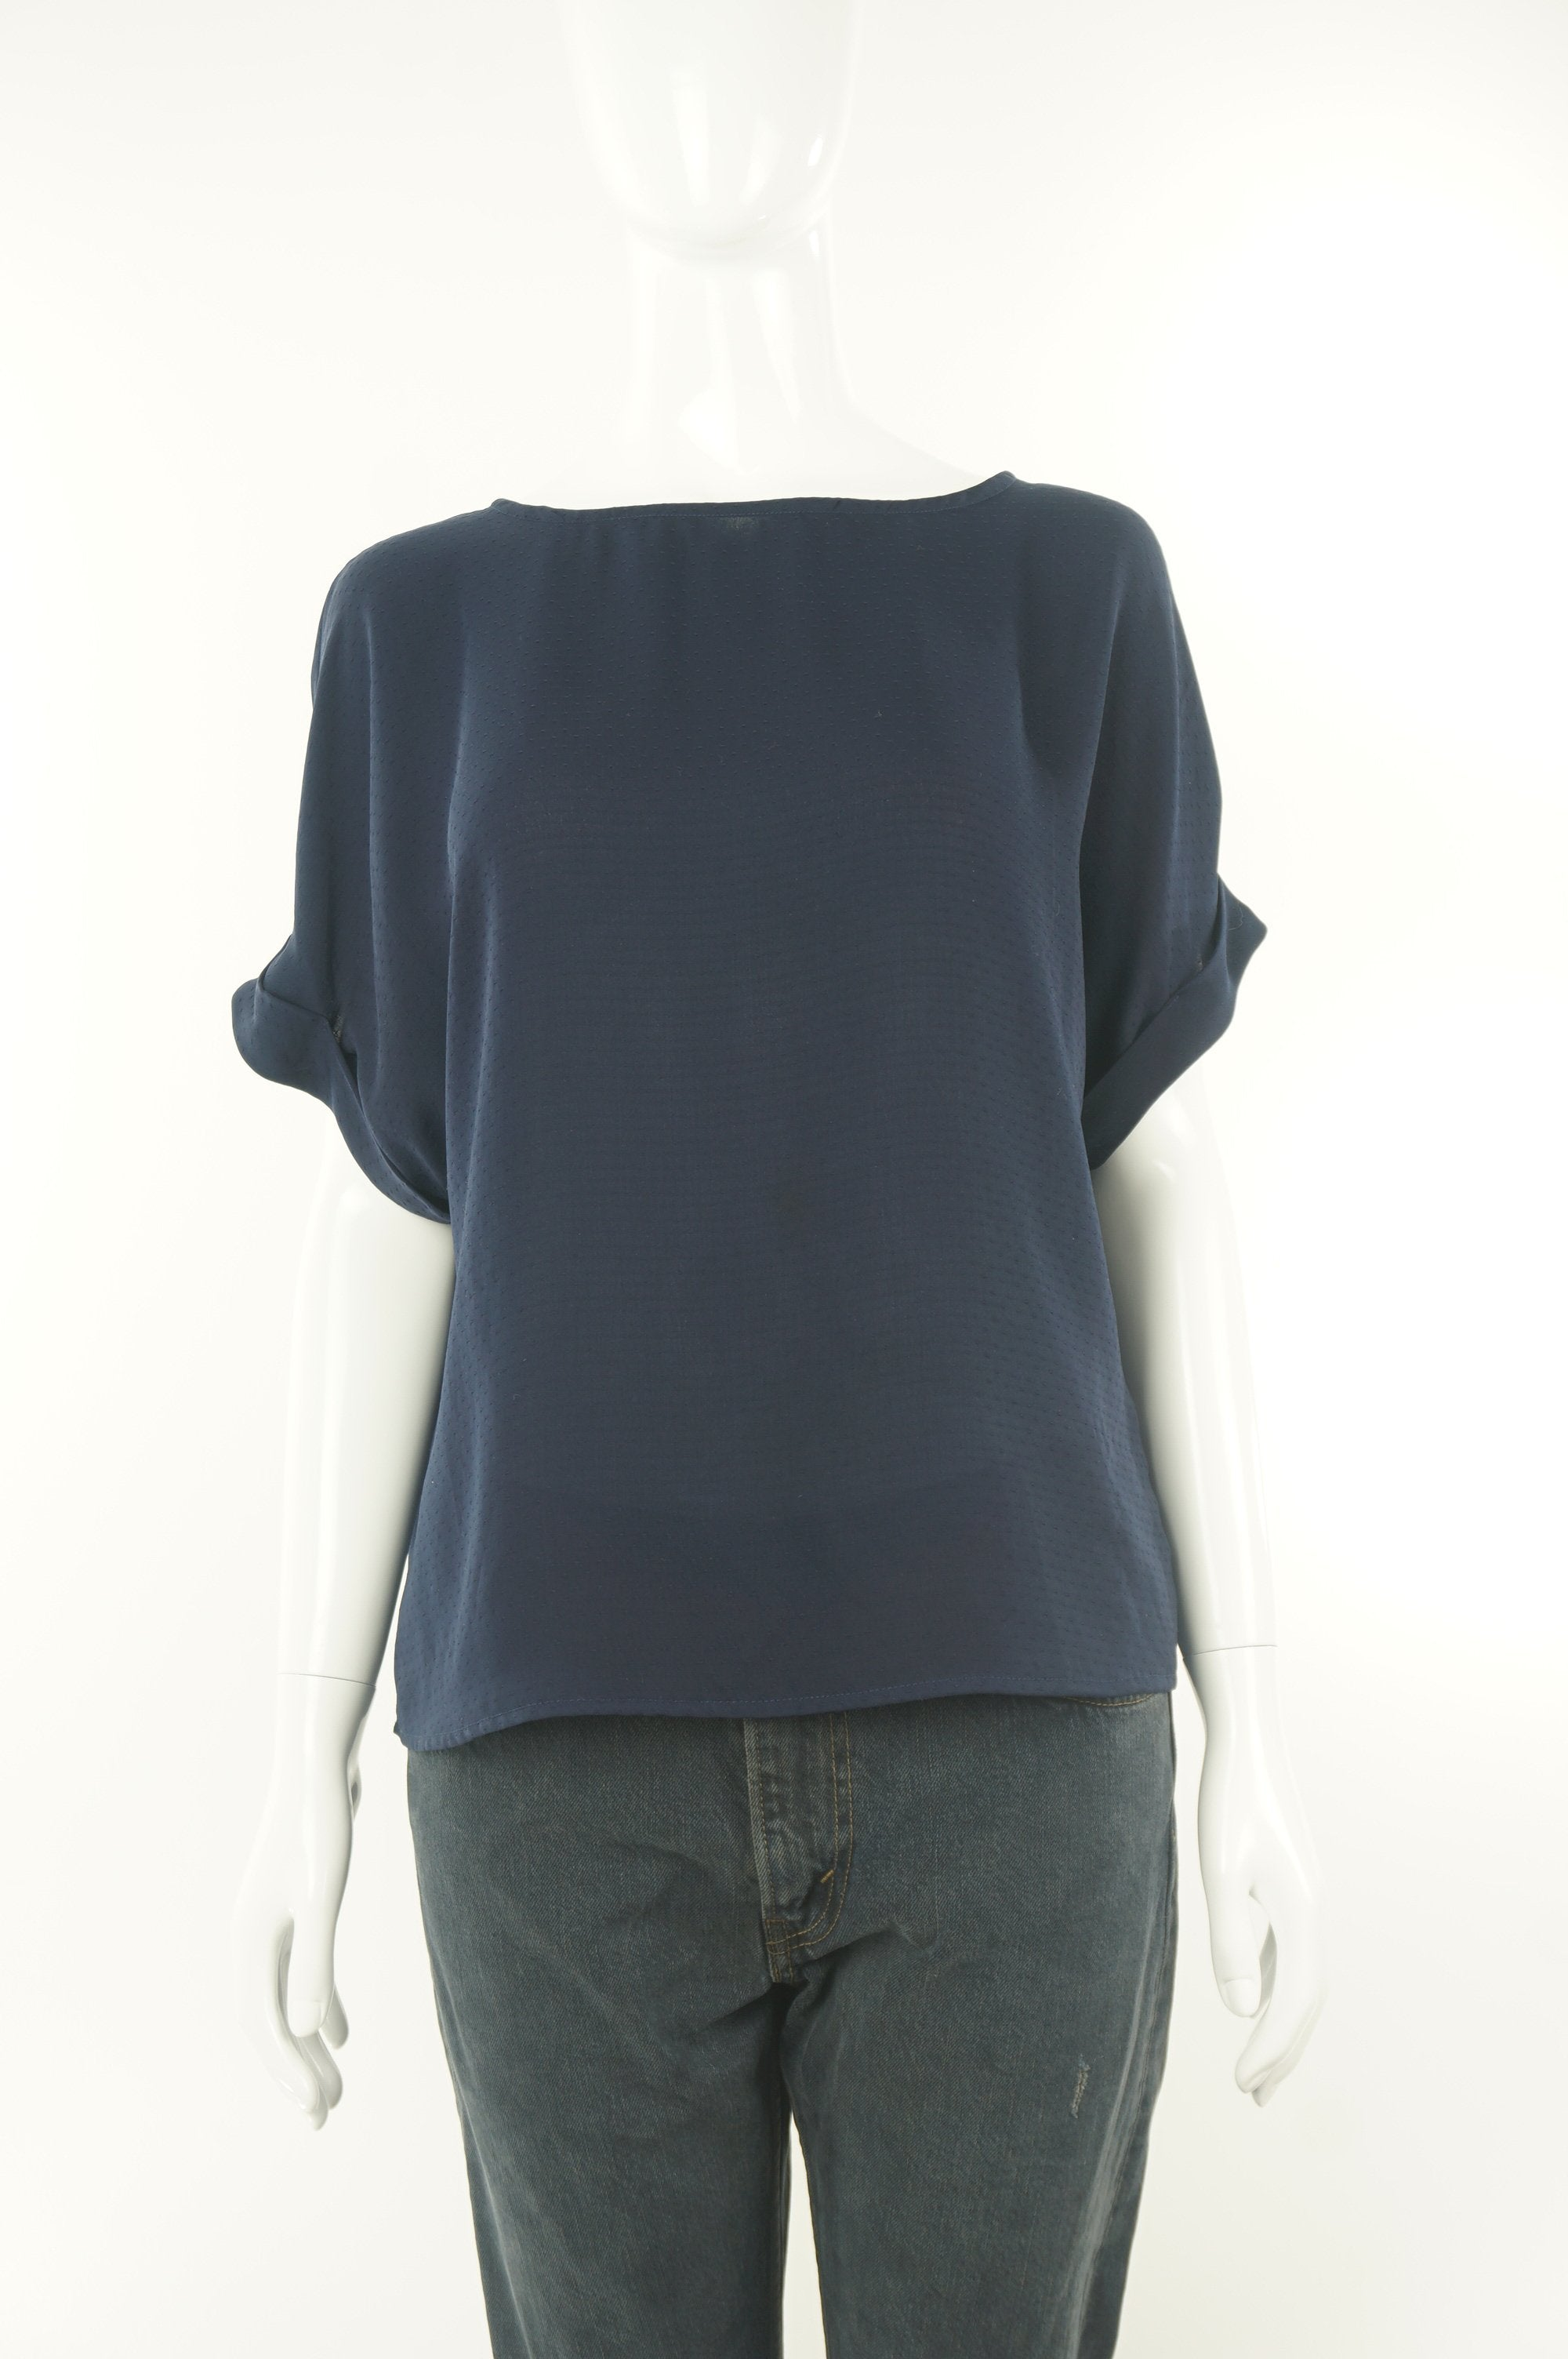 Dynamite Basic and comfy cuffed sleeve navy top, Add the casual and comfortable aspect to your work wardrobe with this cute cuffed sleeves shirt, Blue, 100% Polyester, women's Tops, women's Blue Tops, Dynamite women's Tops, dynamite dark blue top, women's navy blue blouse, women's shirt with folded short sleeves